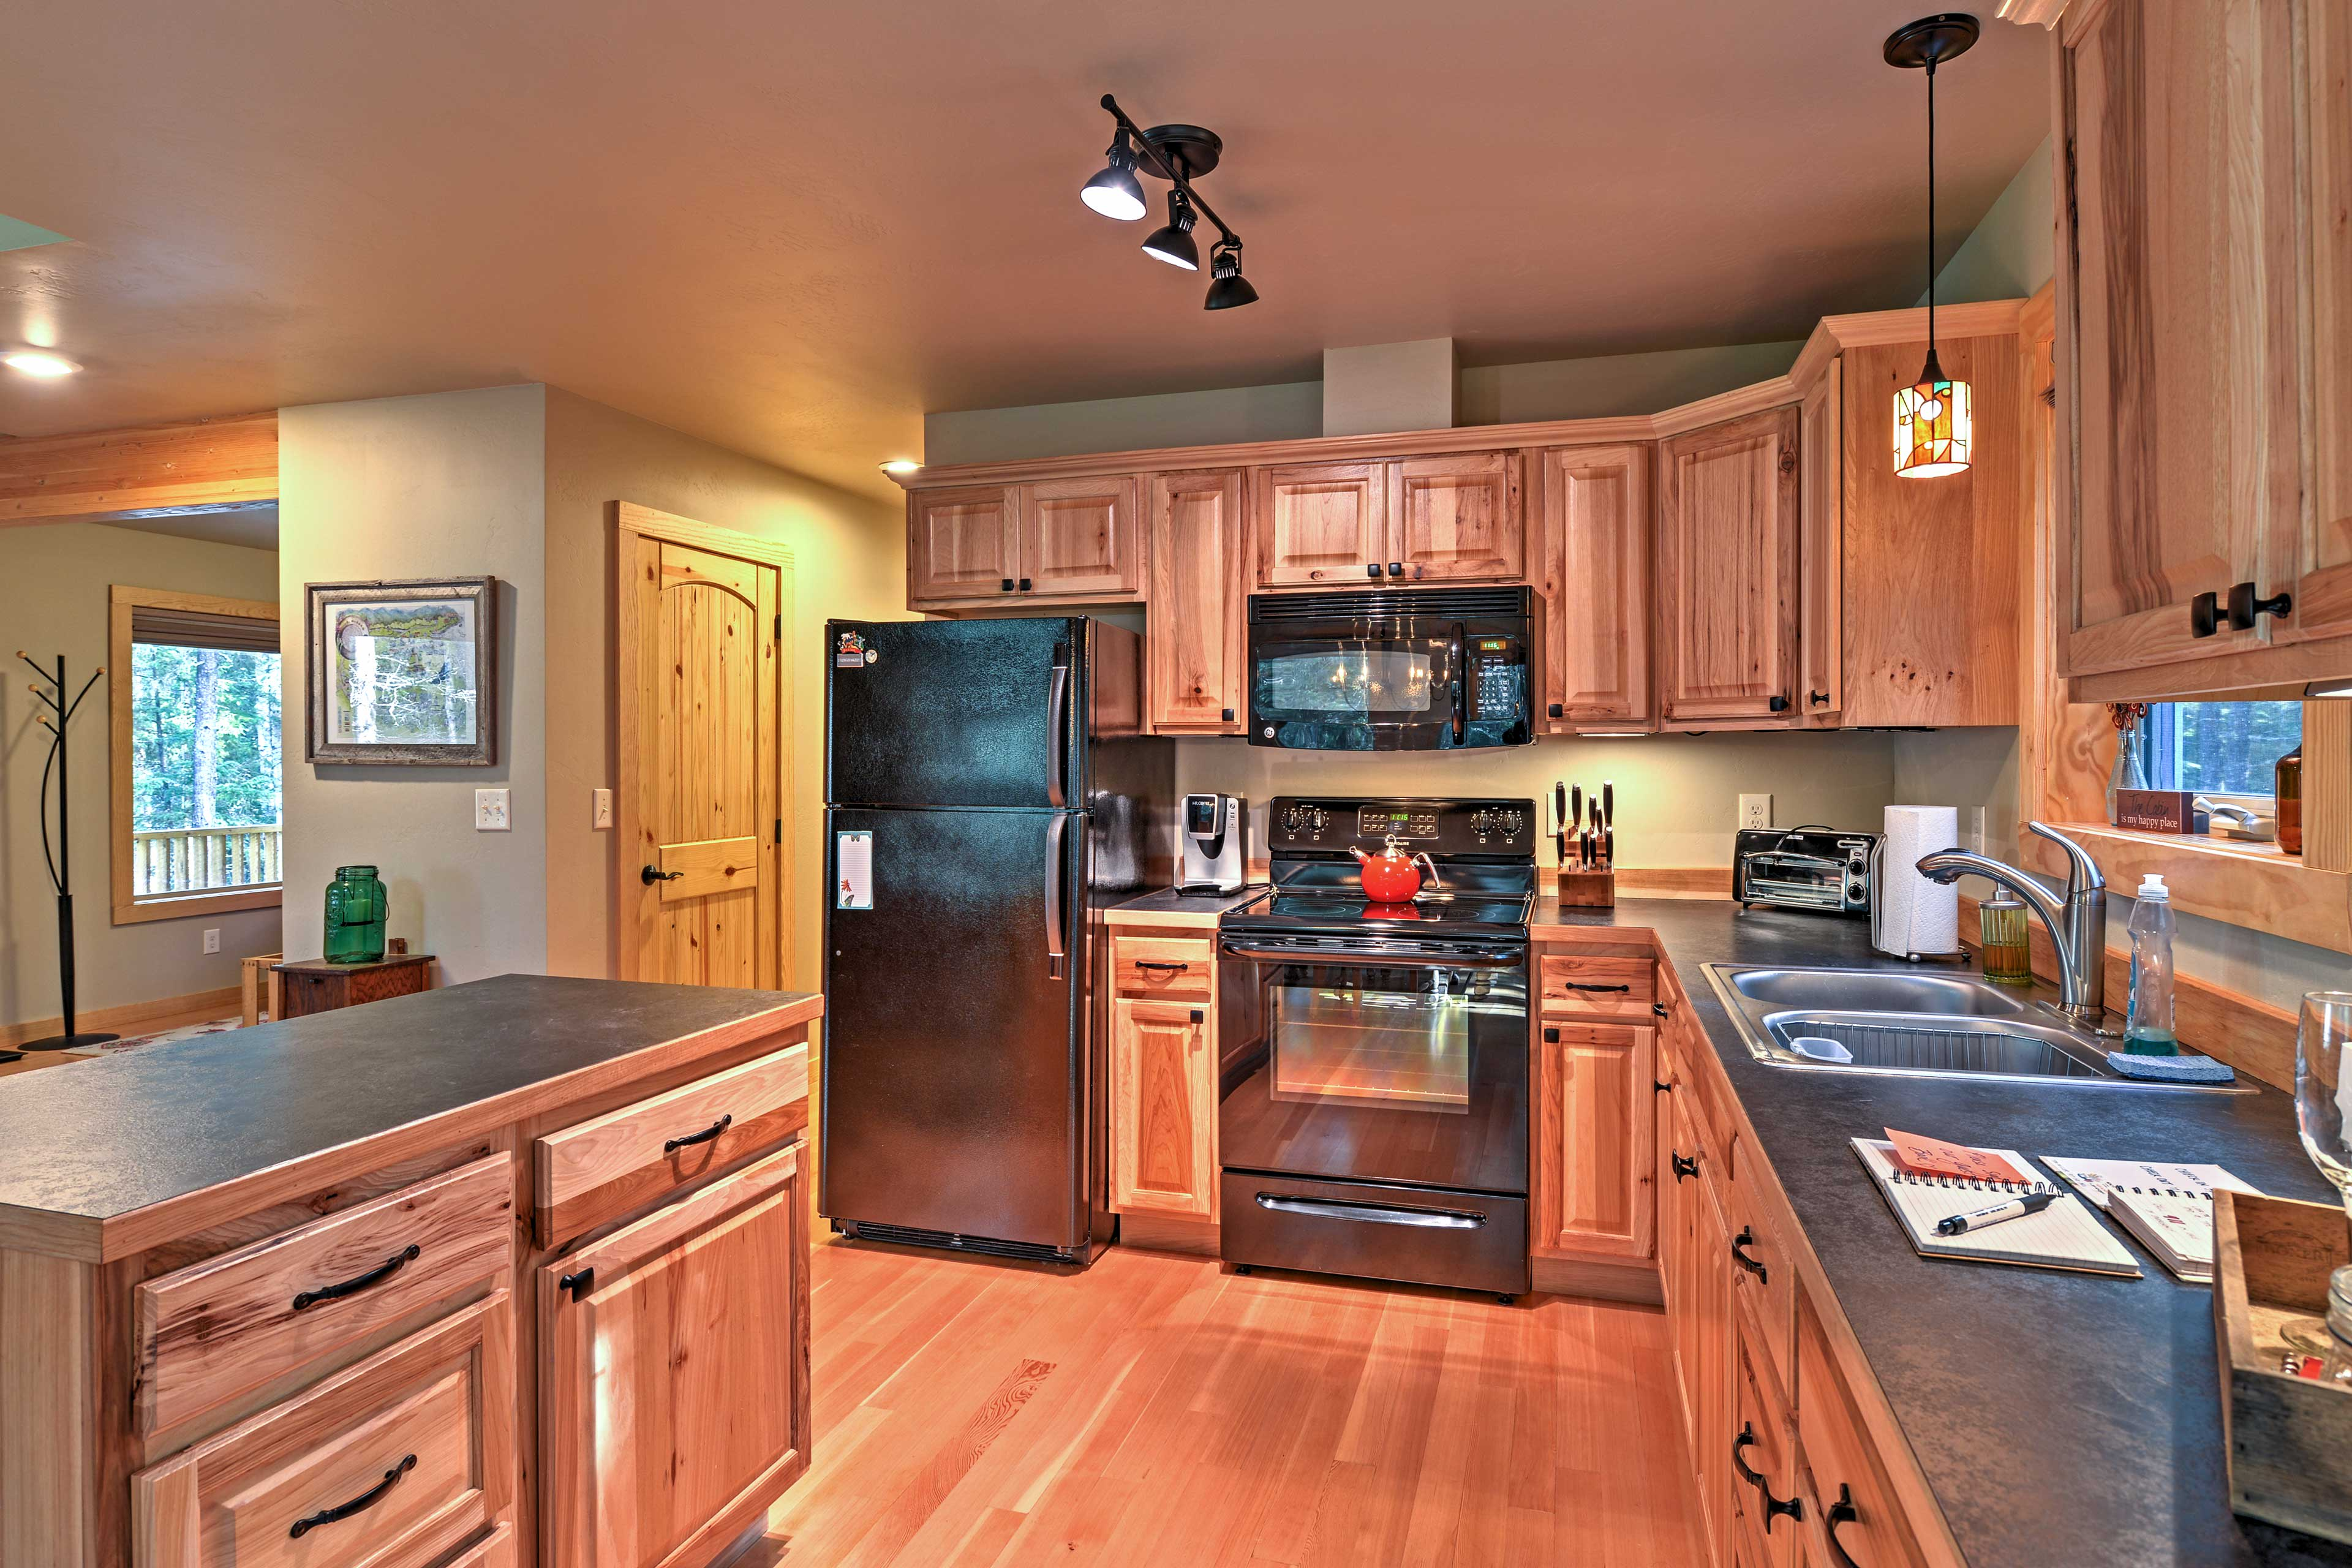 This classic, open kitchen features wood cabinets and ample counter space.